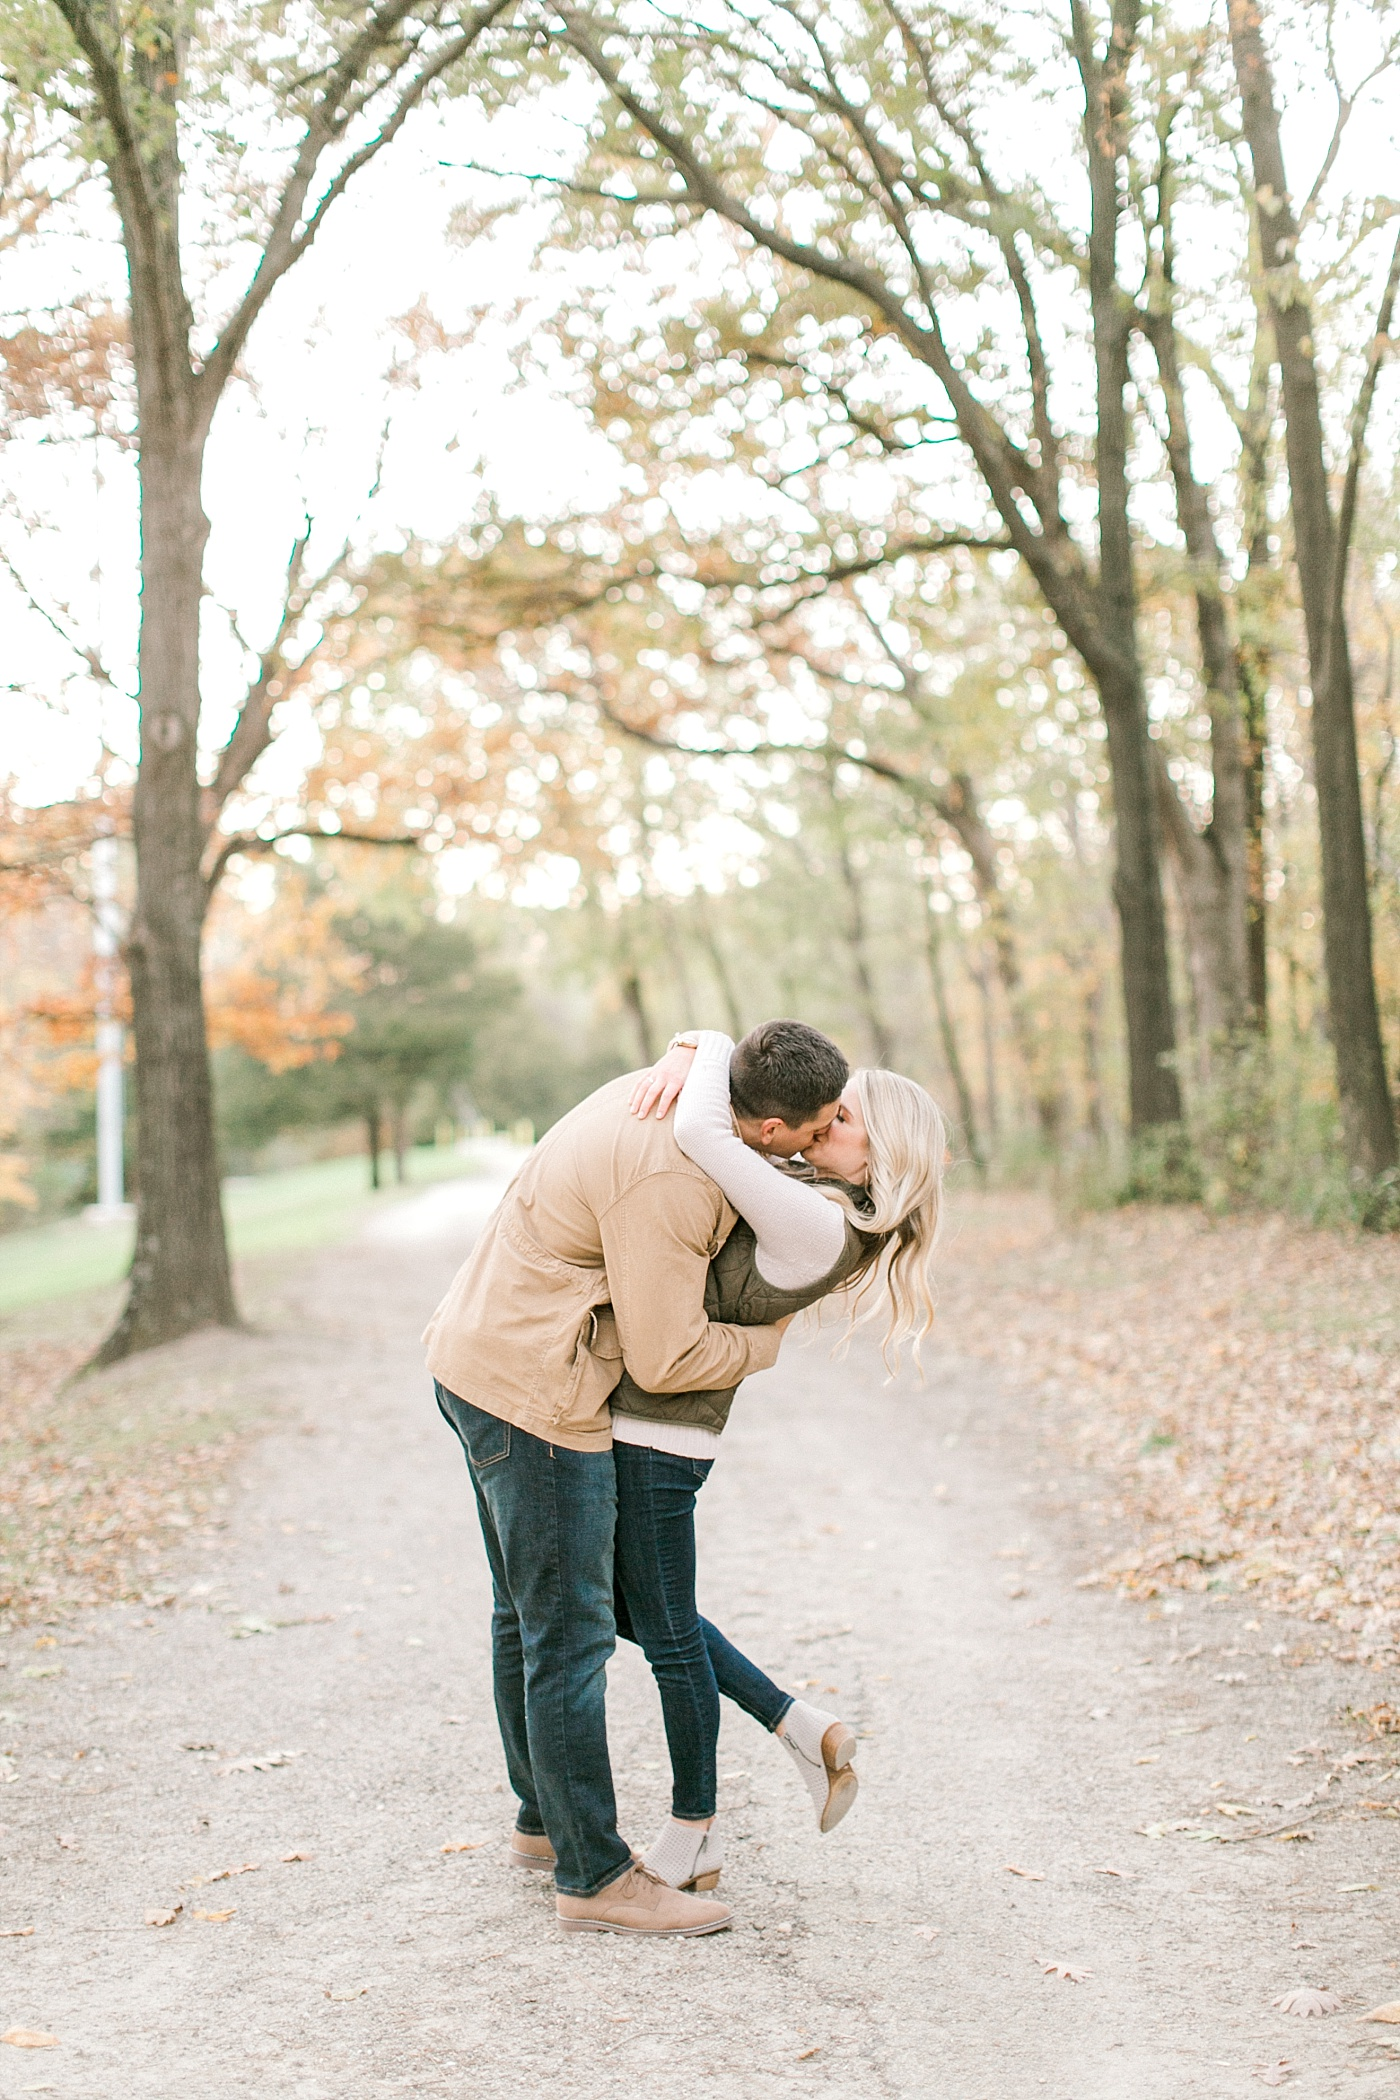 I currently have about 2 spots left in my calendar for 2019 weddings! If you or someone you know is needing a wedding photographer, my husband and I would love to photograph your wedding! Contact us today at 563-676-3980. <3